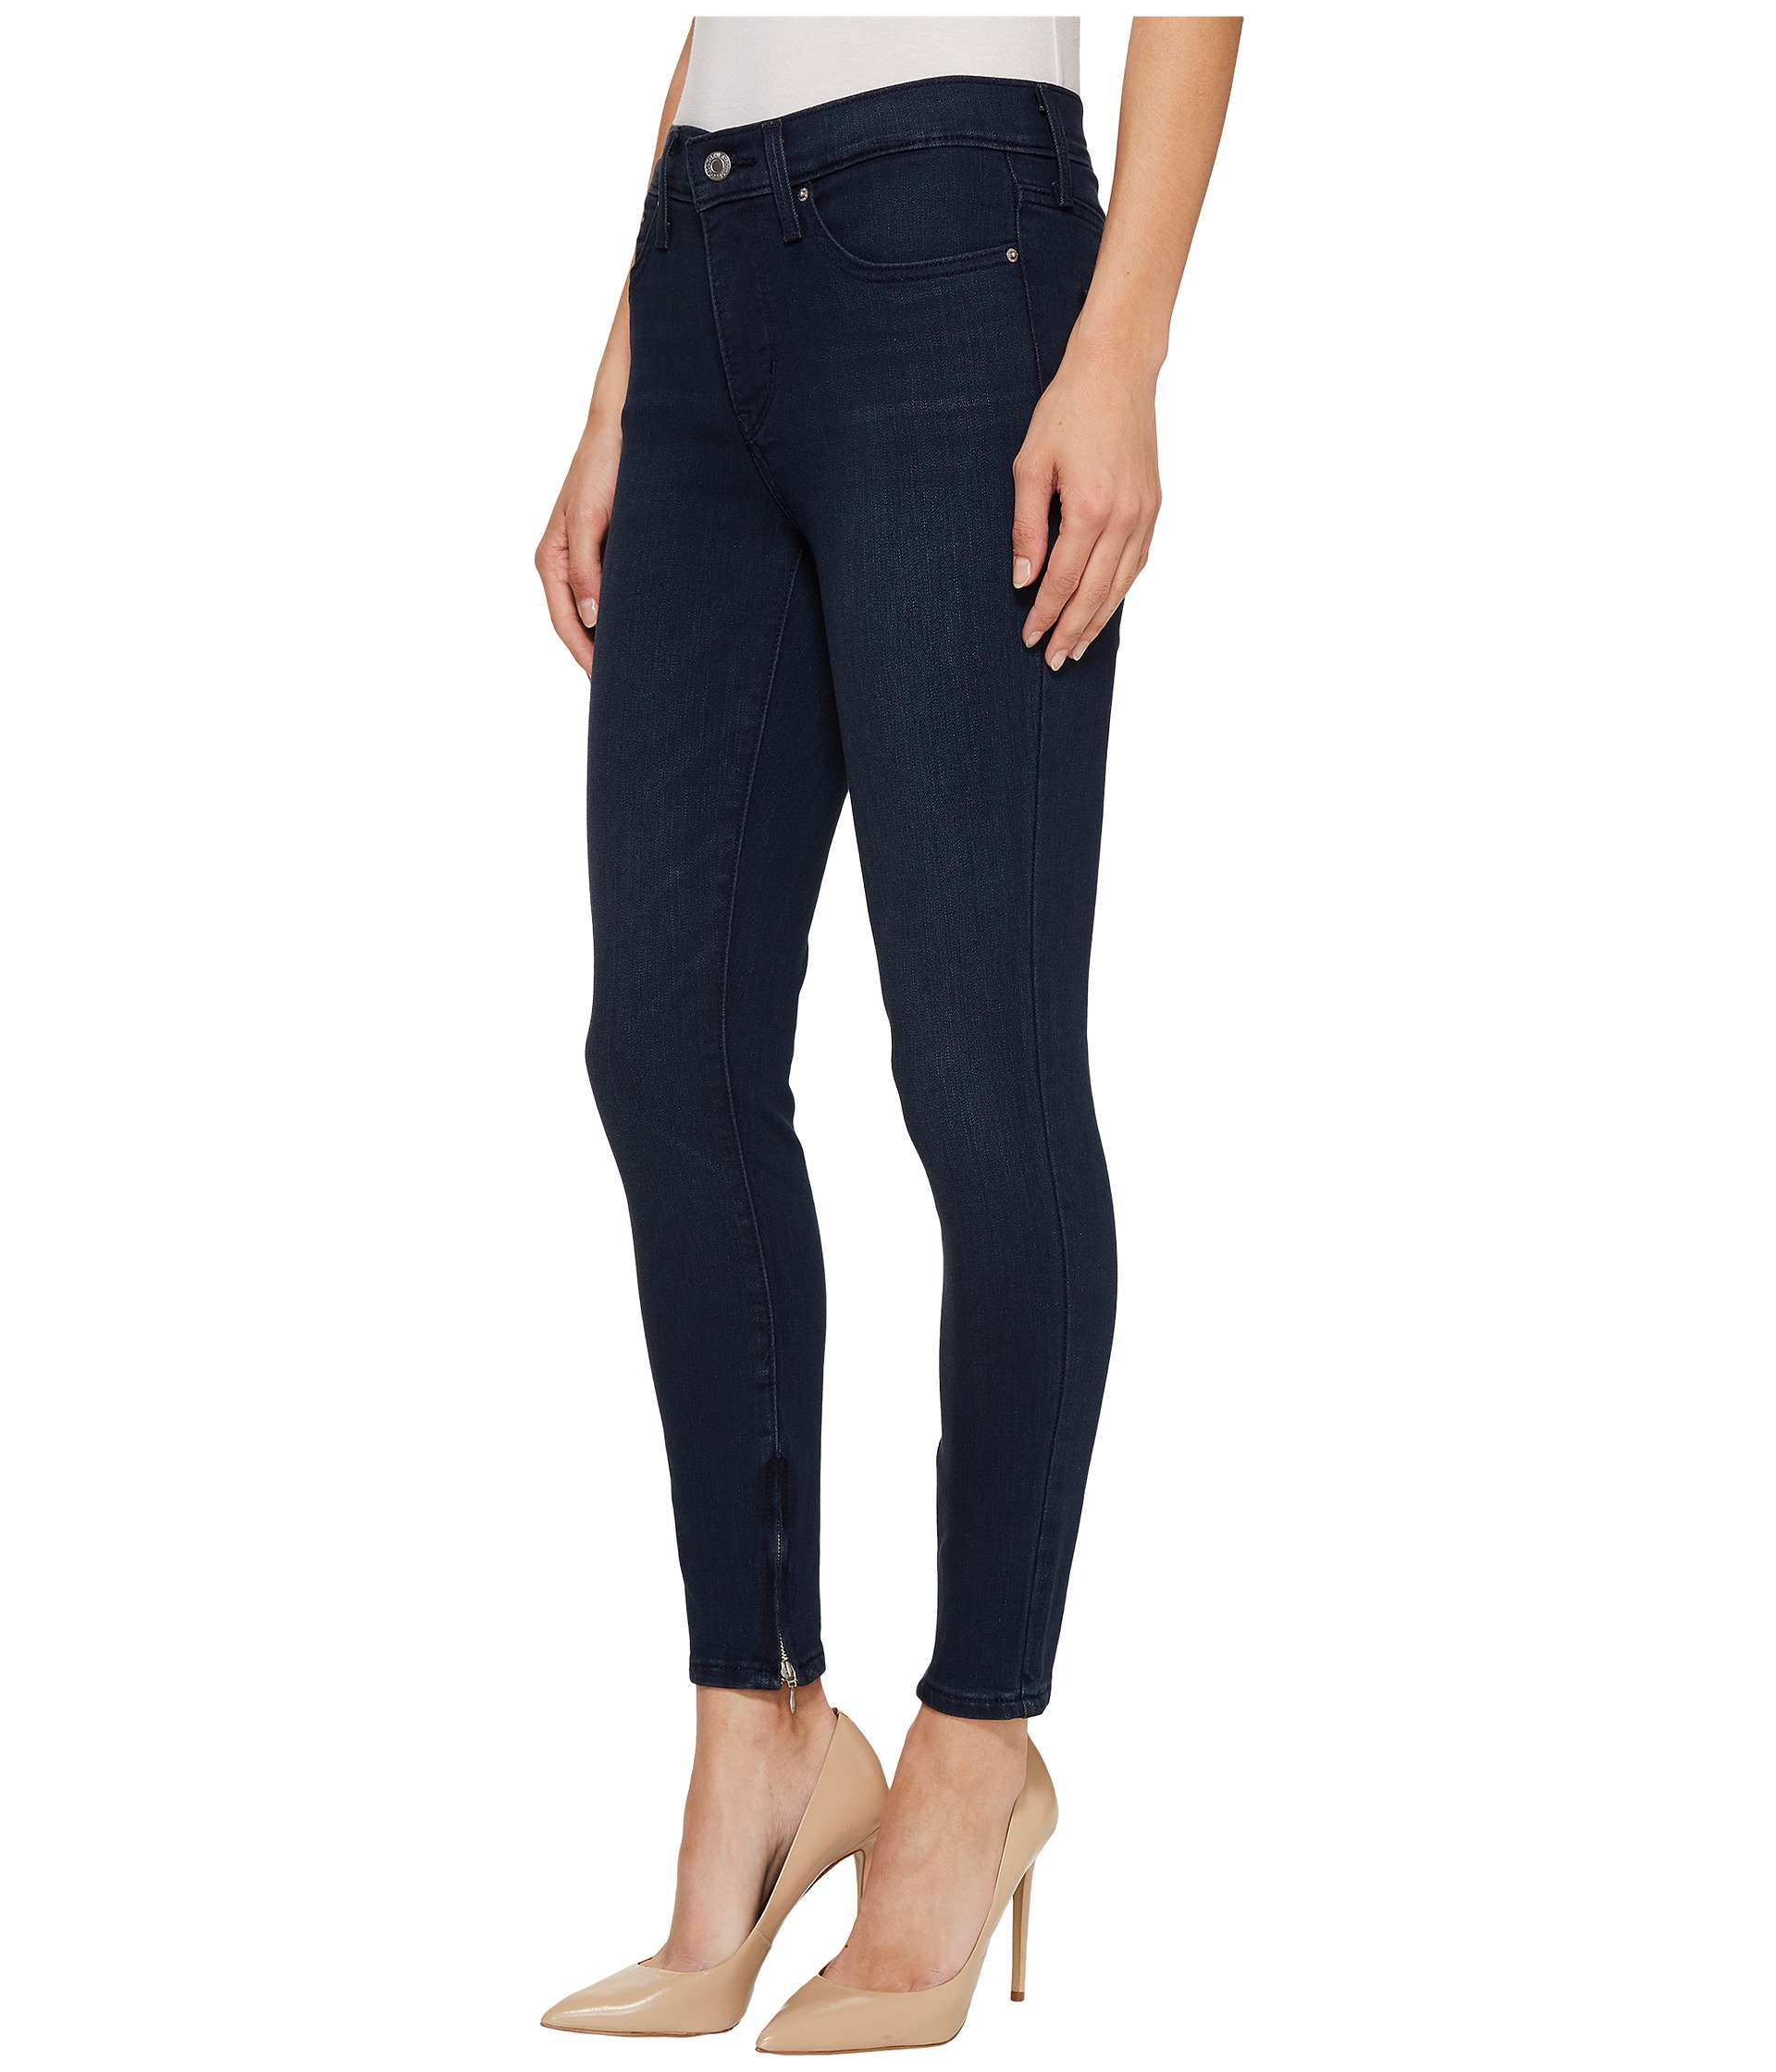 Levi's® Womens 311 Styled Shaping Skinny at Zappos.com